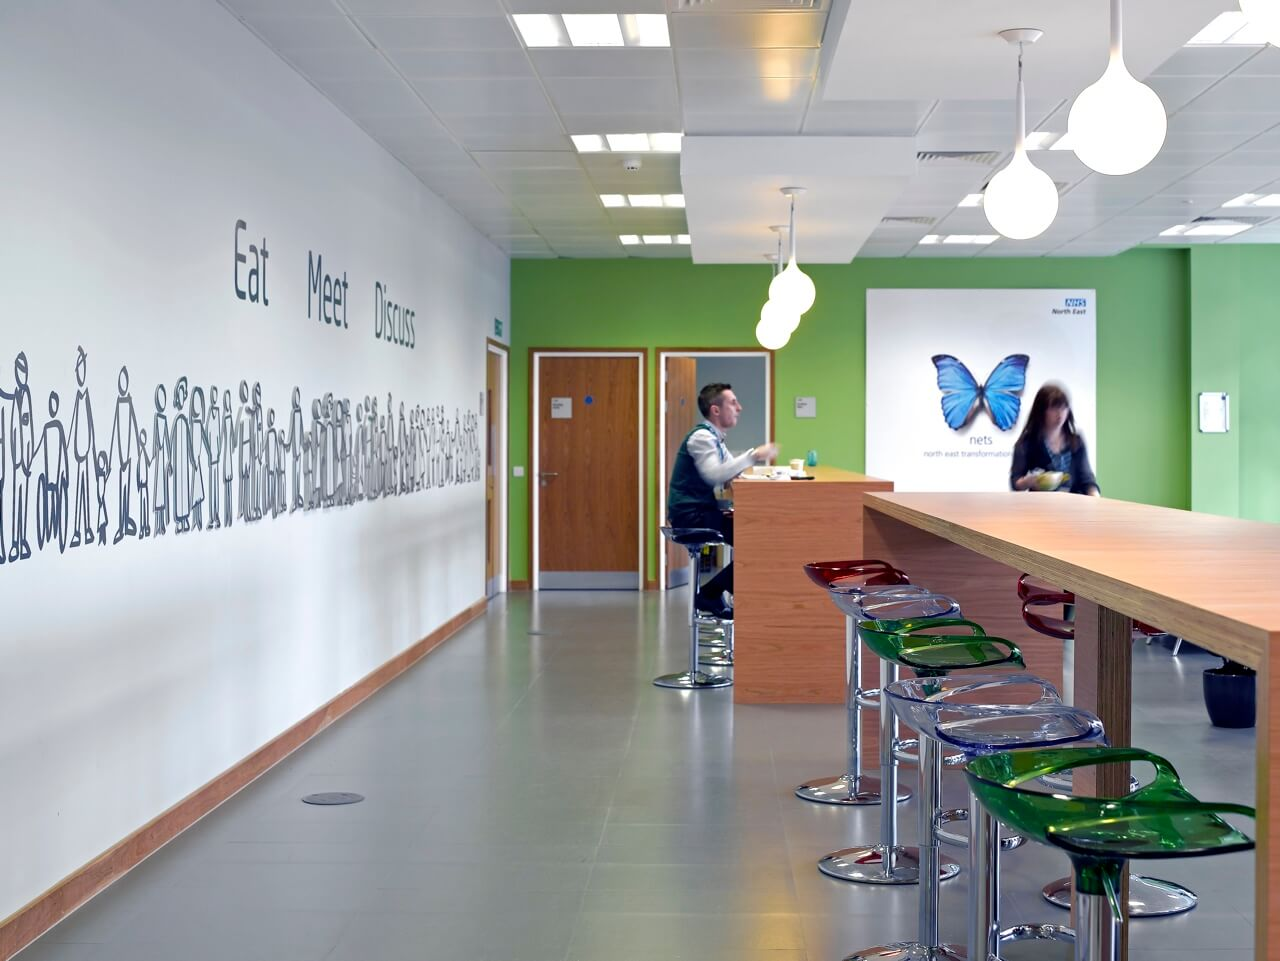 A supergraphic forms part of a workplace business signs and environmental graphics scheme for the NHS